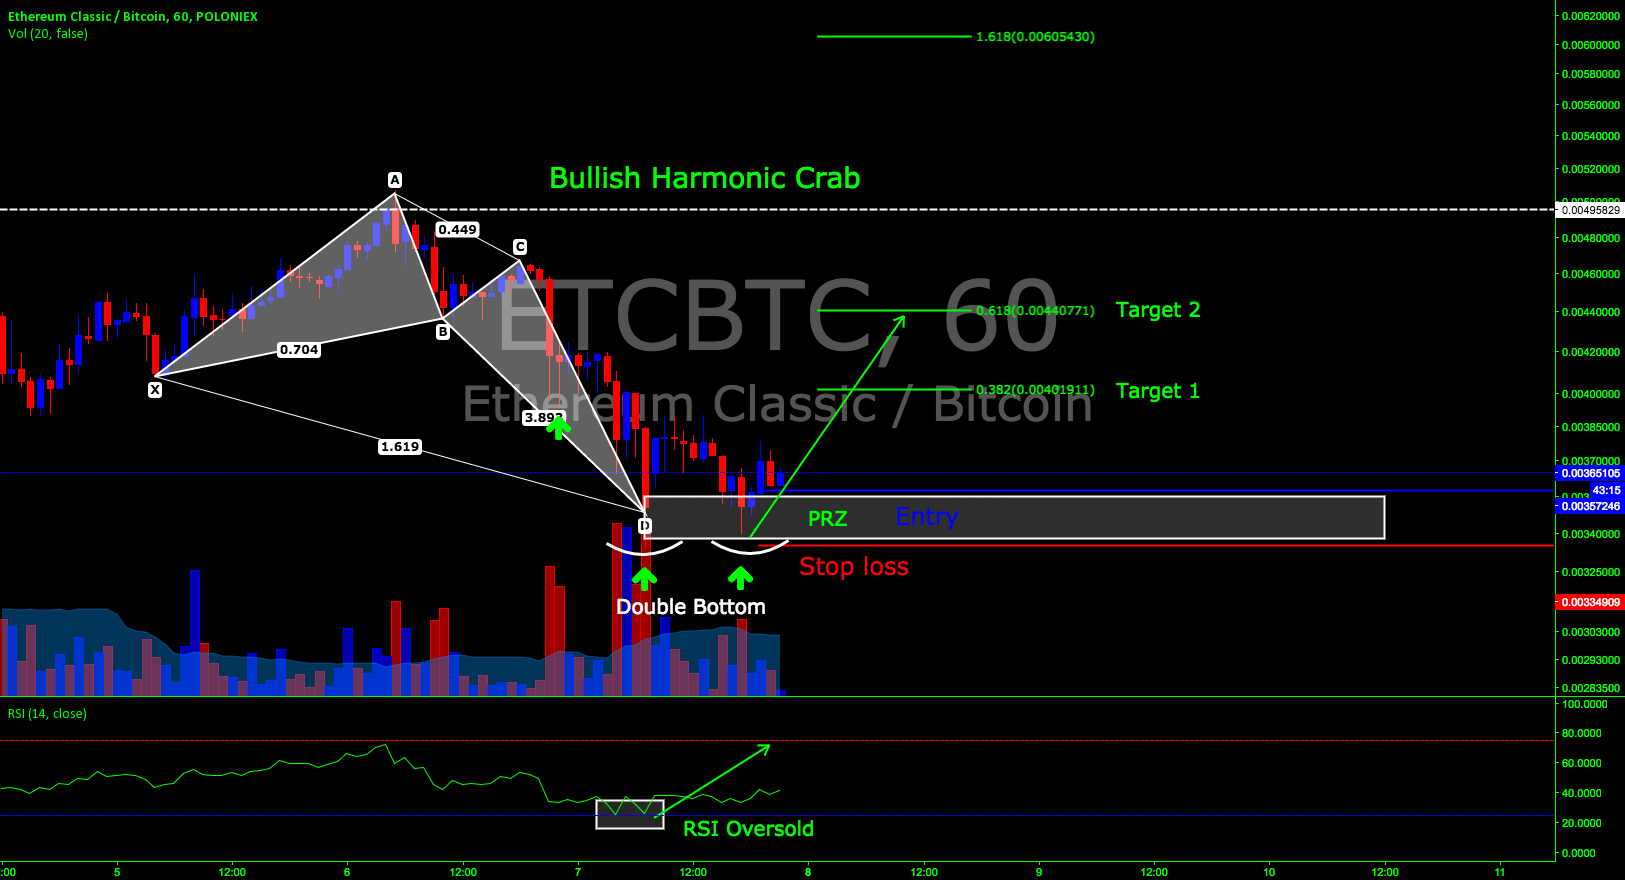 Long position on ETCBTC pair on Poloniex 60 min chart